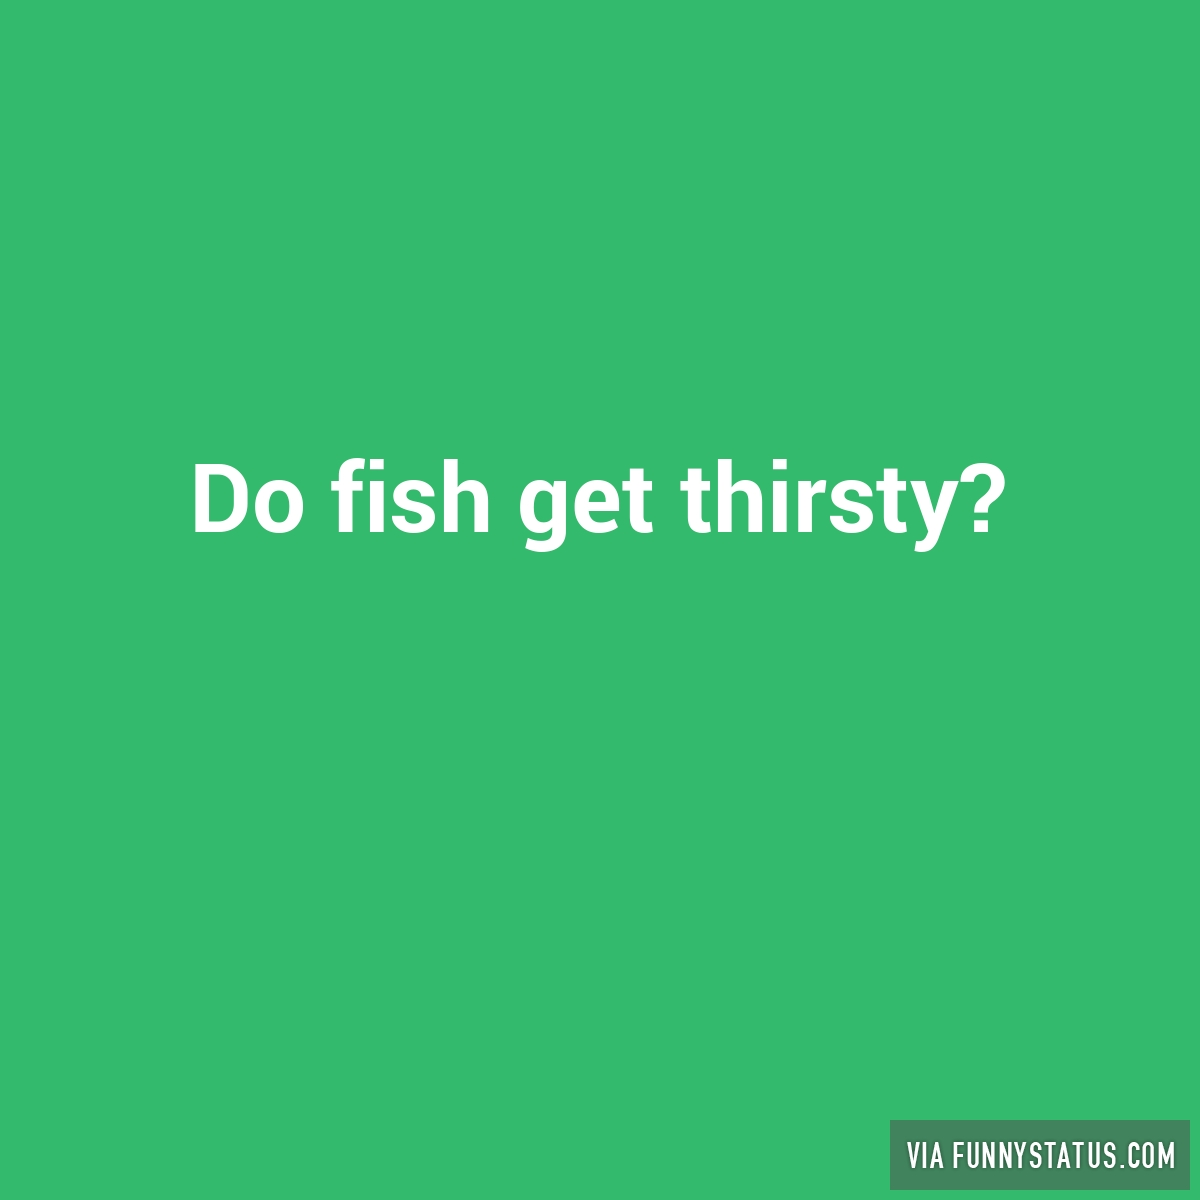 do fish get thirsty funny status